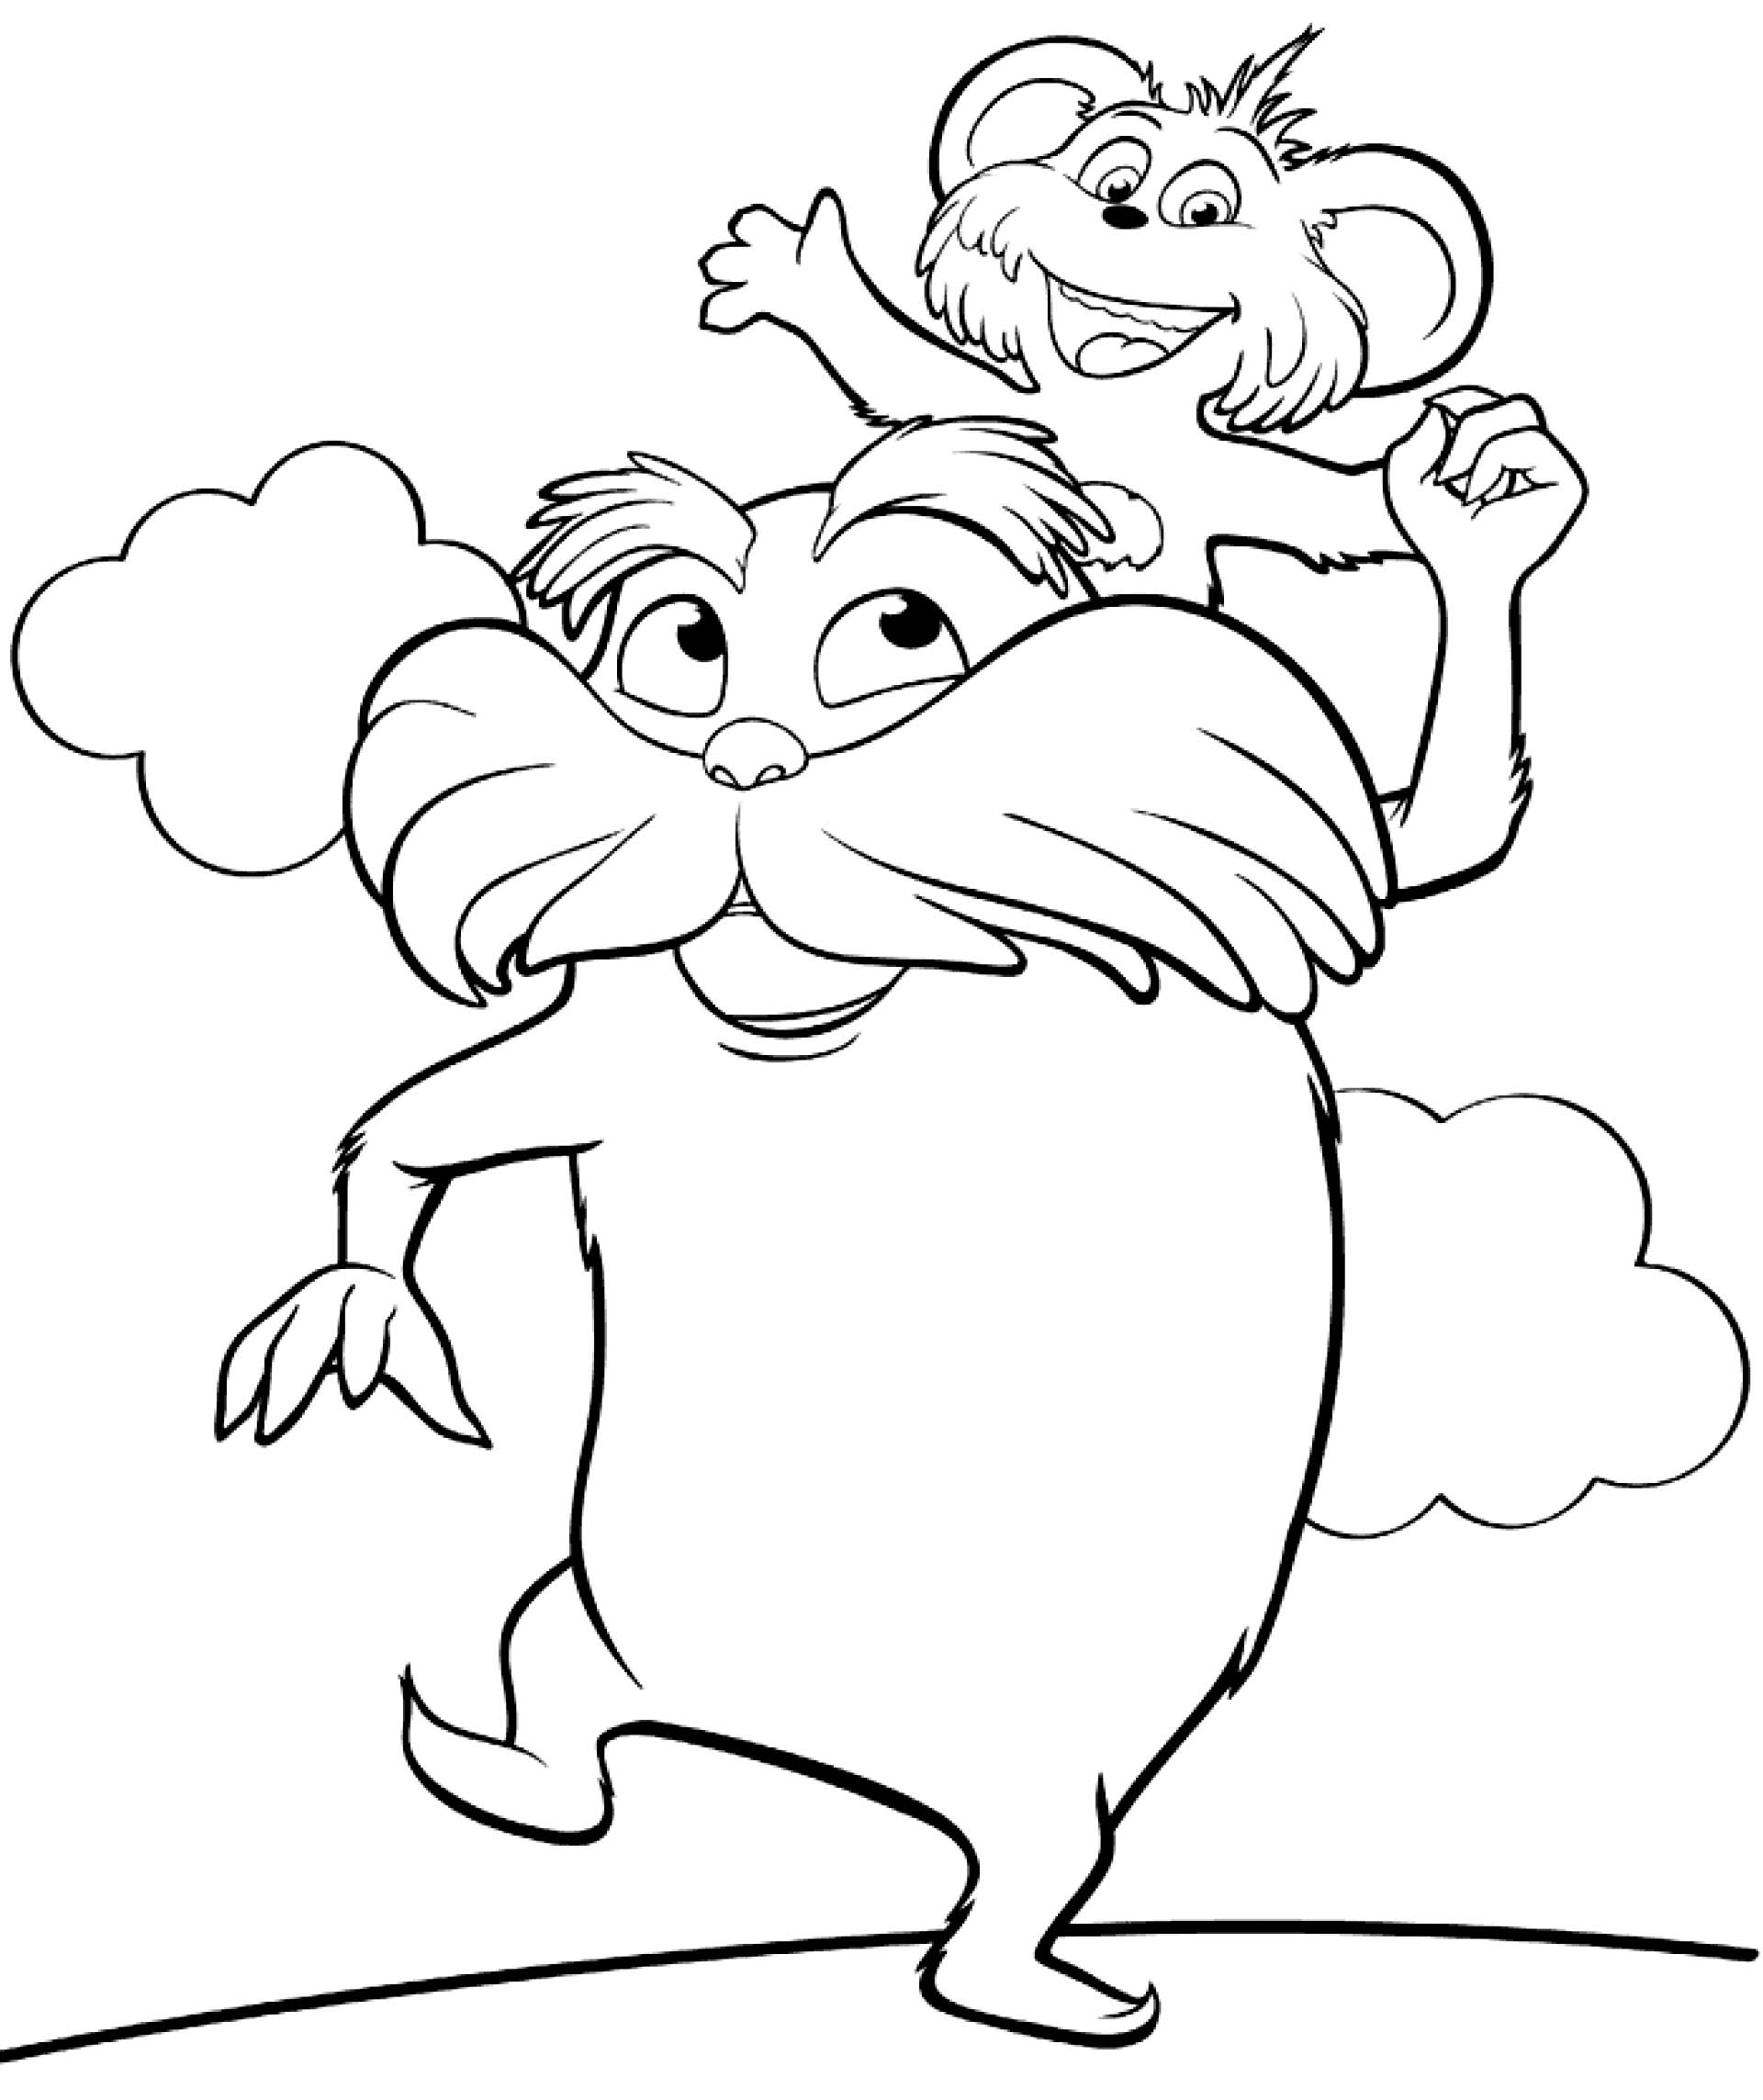 Gallery For gt Lorax Clip Art Black And White